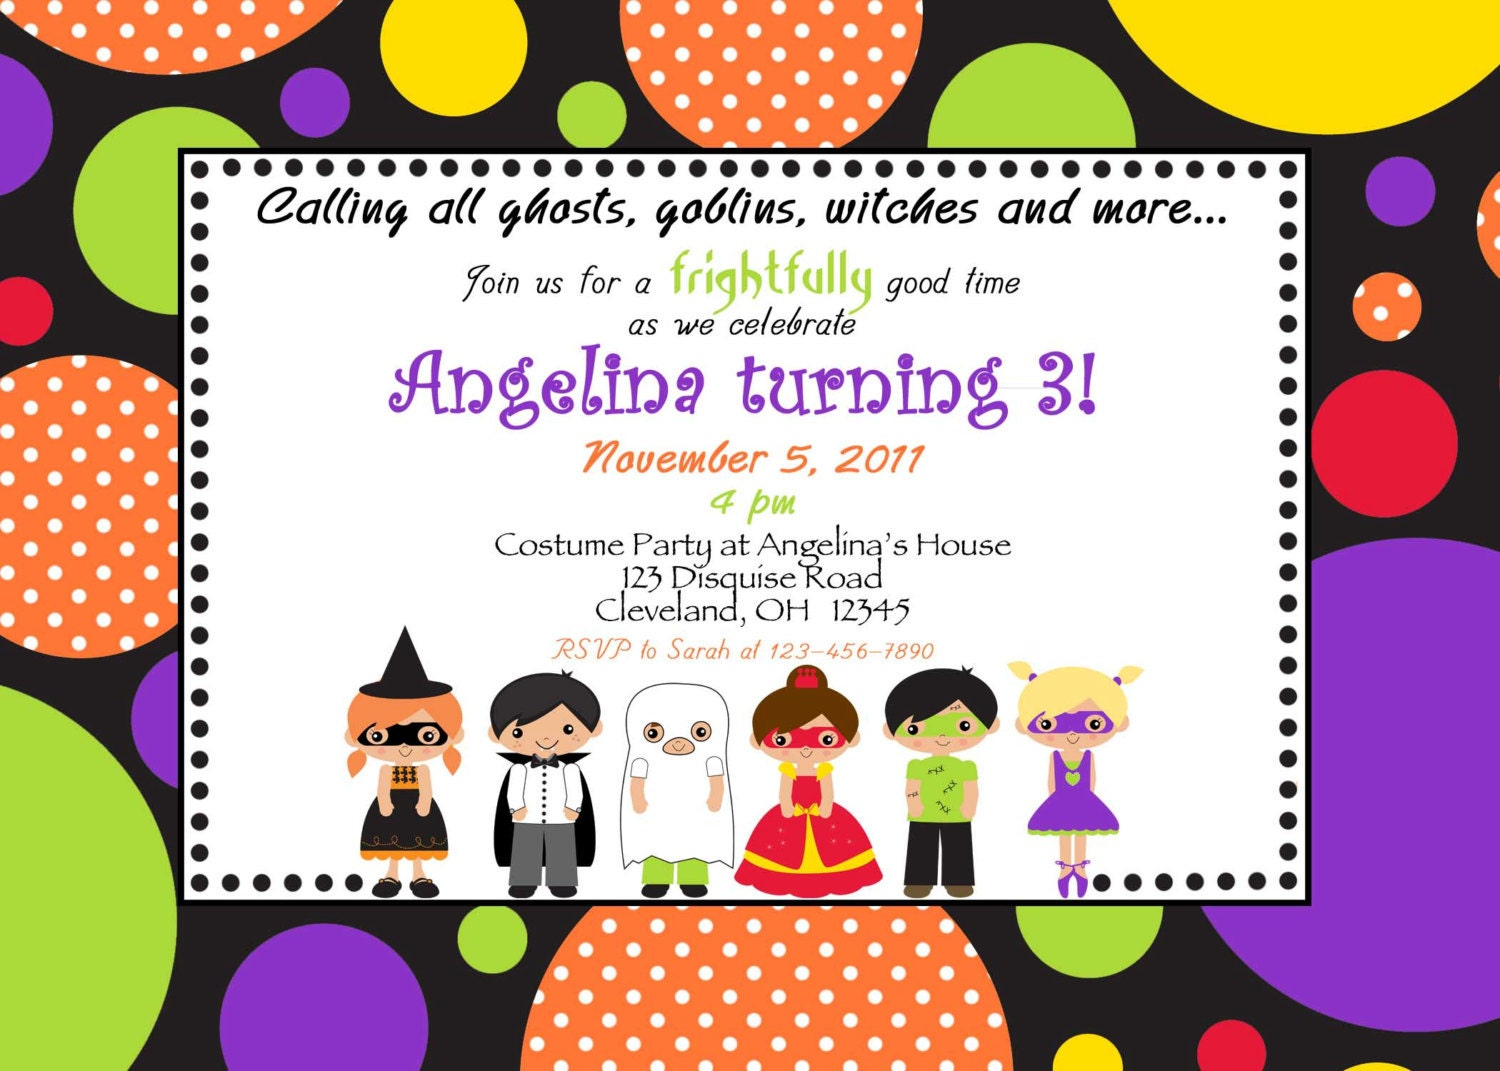 Halloween Party Invitation Wording was awesome invitation layout